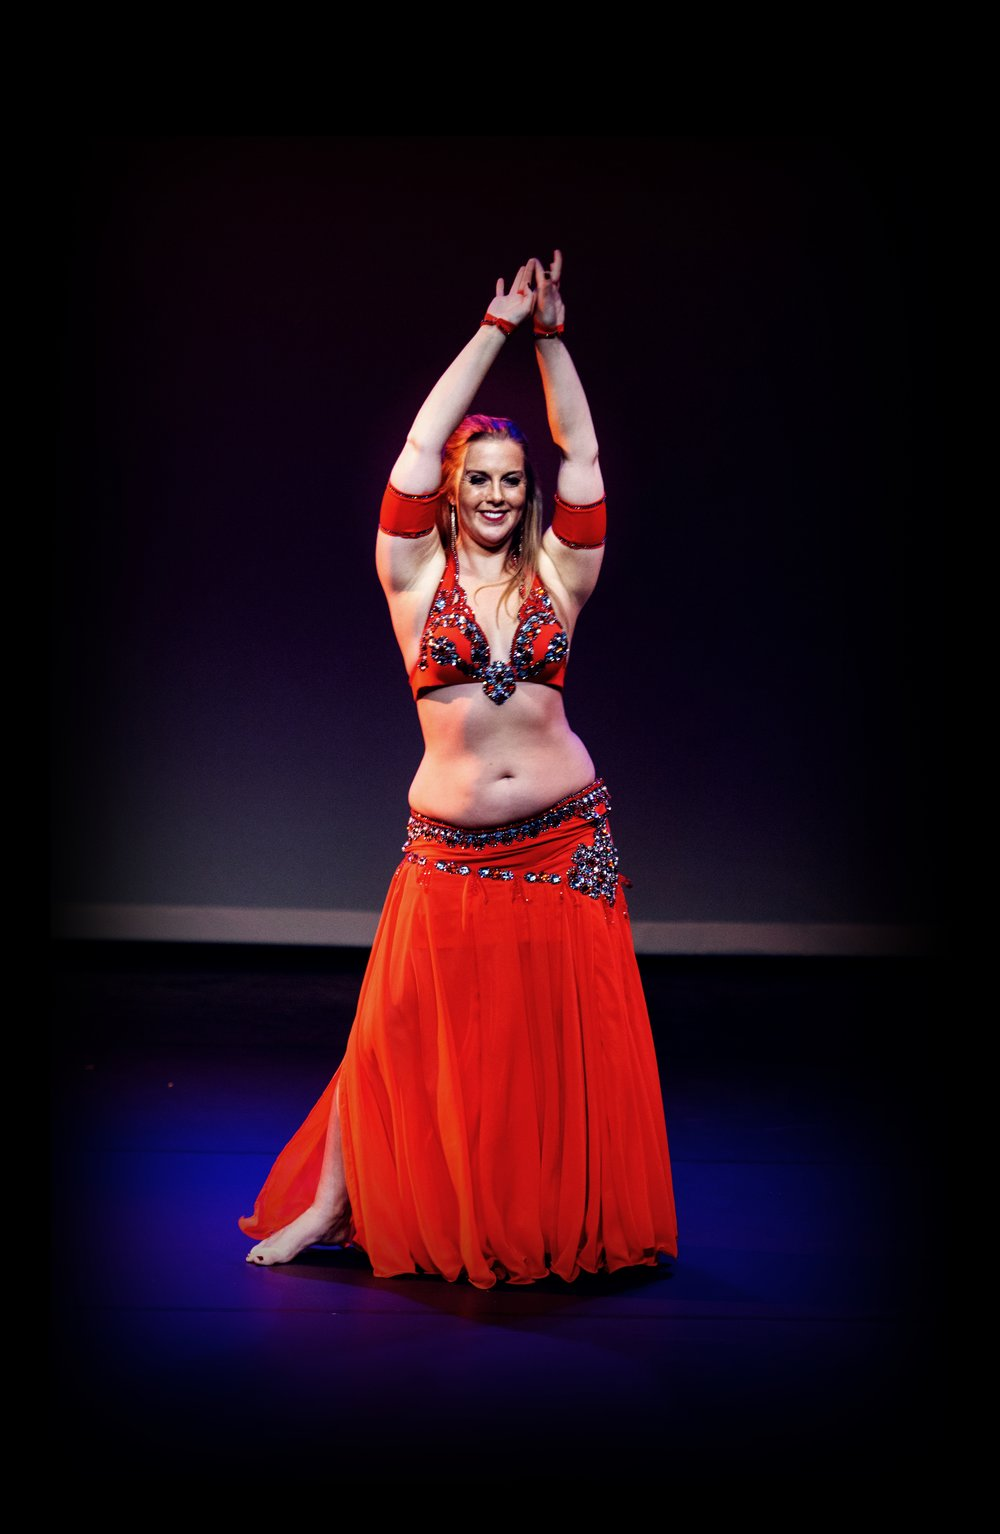 Maria Oriental - Belly Dance at 1001 Moves in Enschede, Holland. June 2016.  Photo: Rob Elsjan